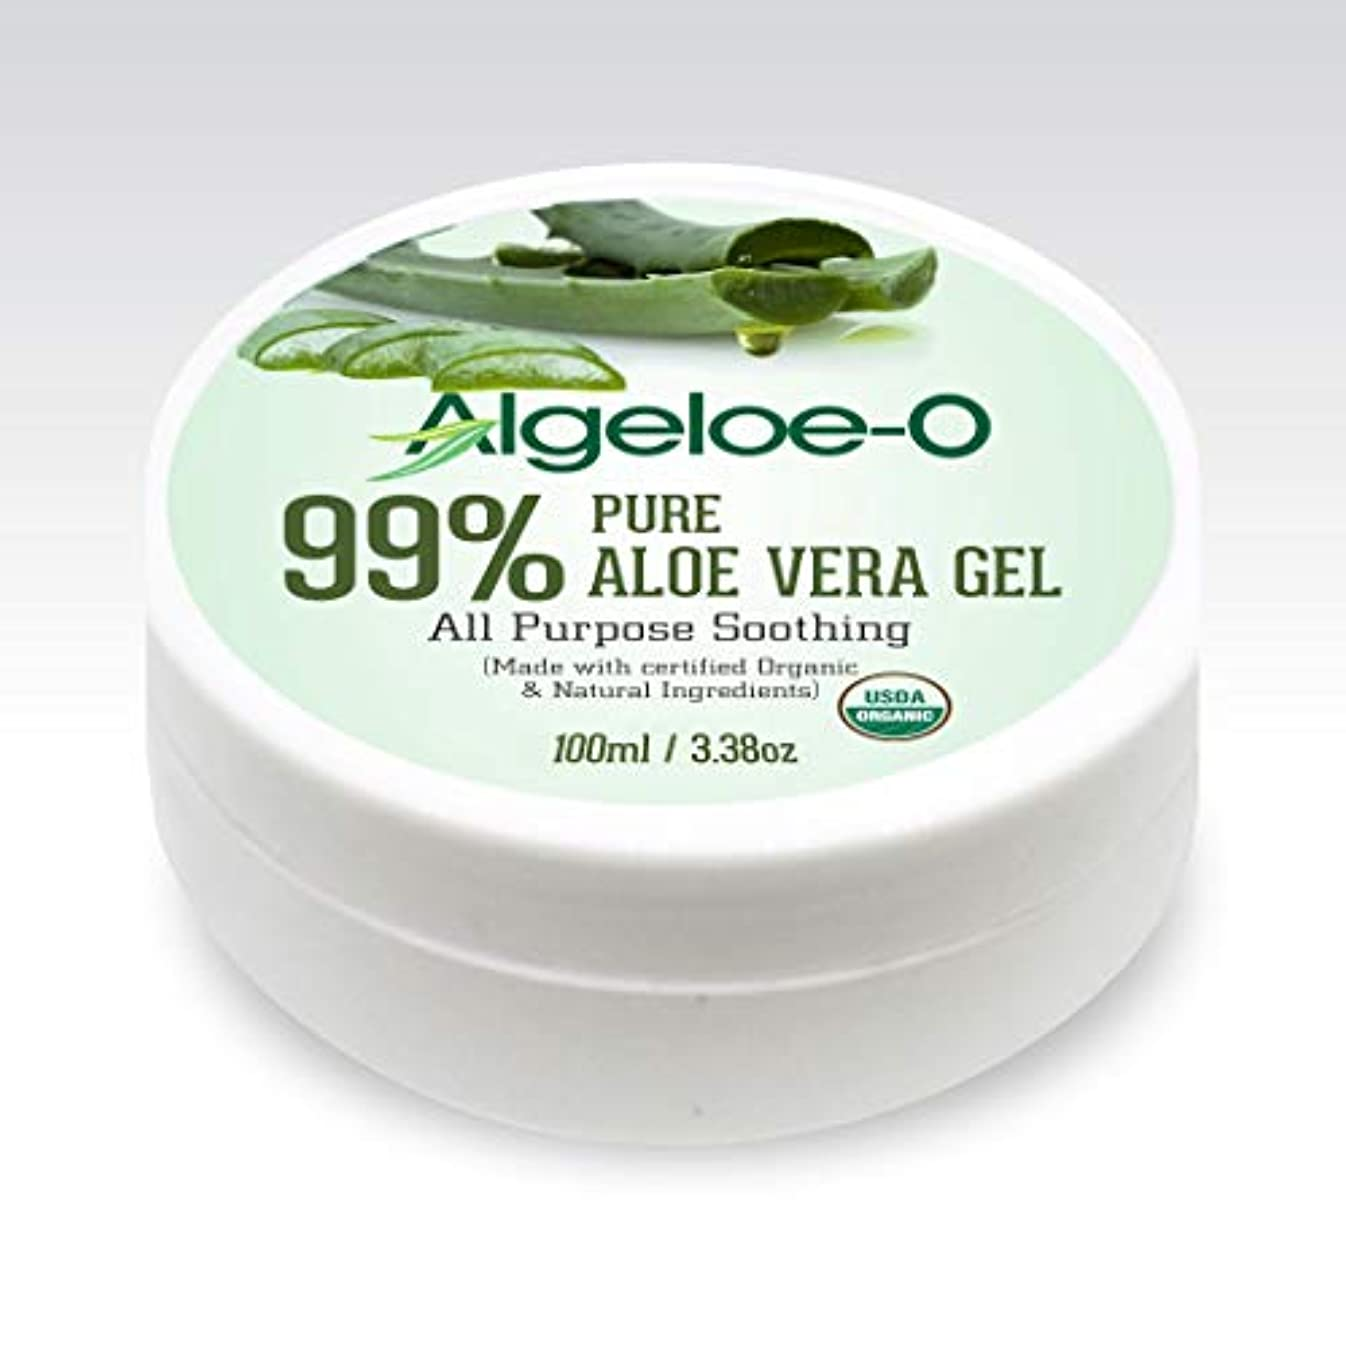 ハングデザートリビングルームAlgeloe-O  Organic Aloe Vera Gel 99% Pure Natural made with USDA Certified Aloe Vera Powder Paraben, sulfate free...